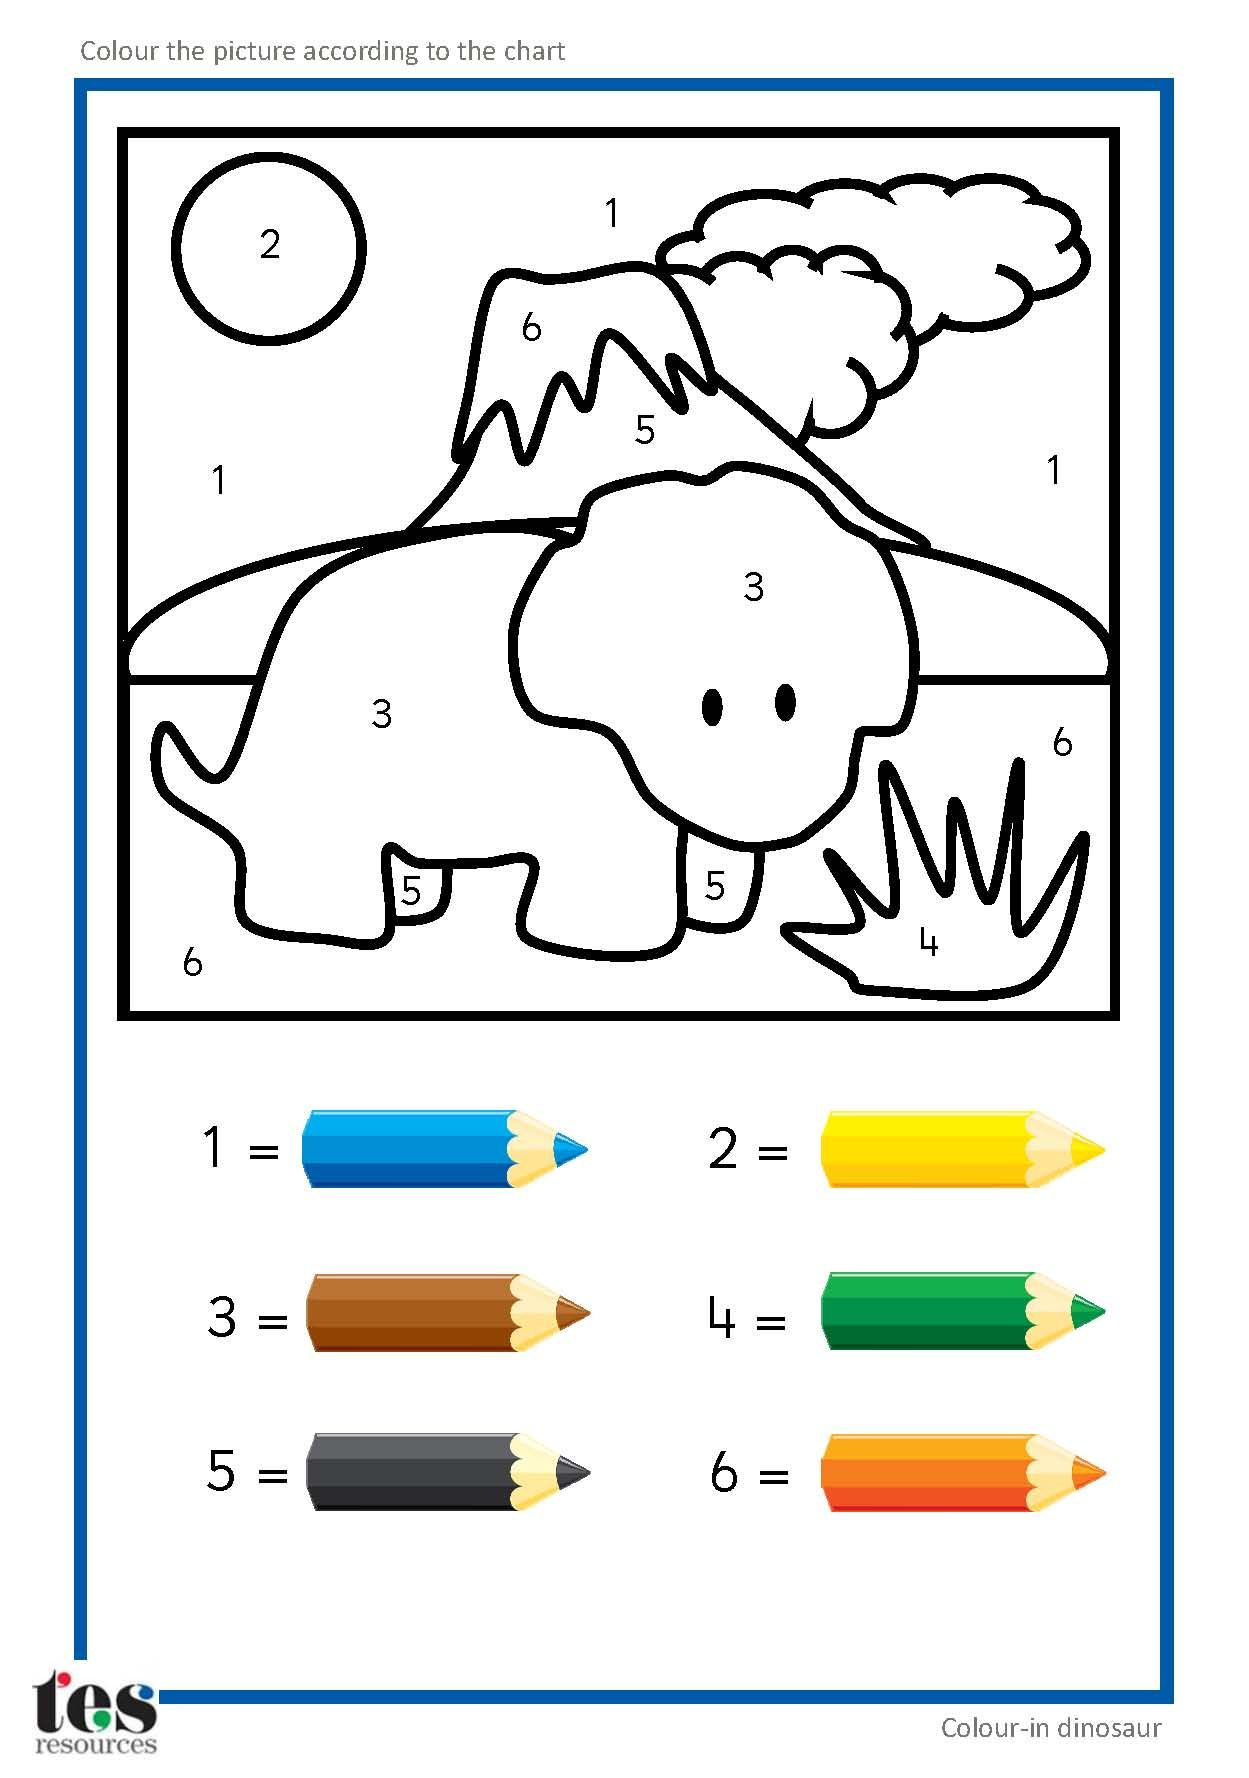 Simple Colour By Numbers Dinosaur Pictures With Clear